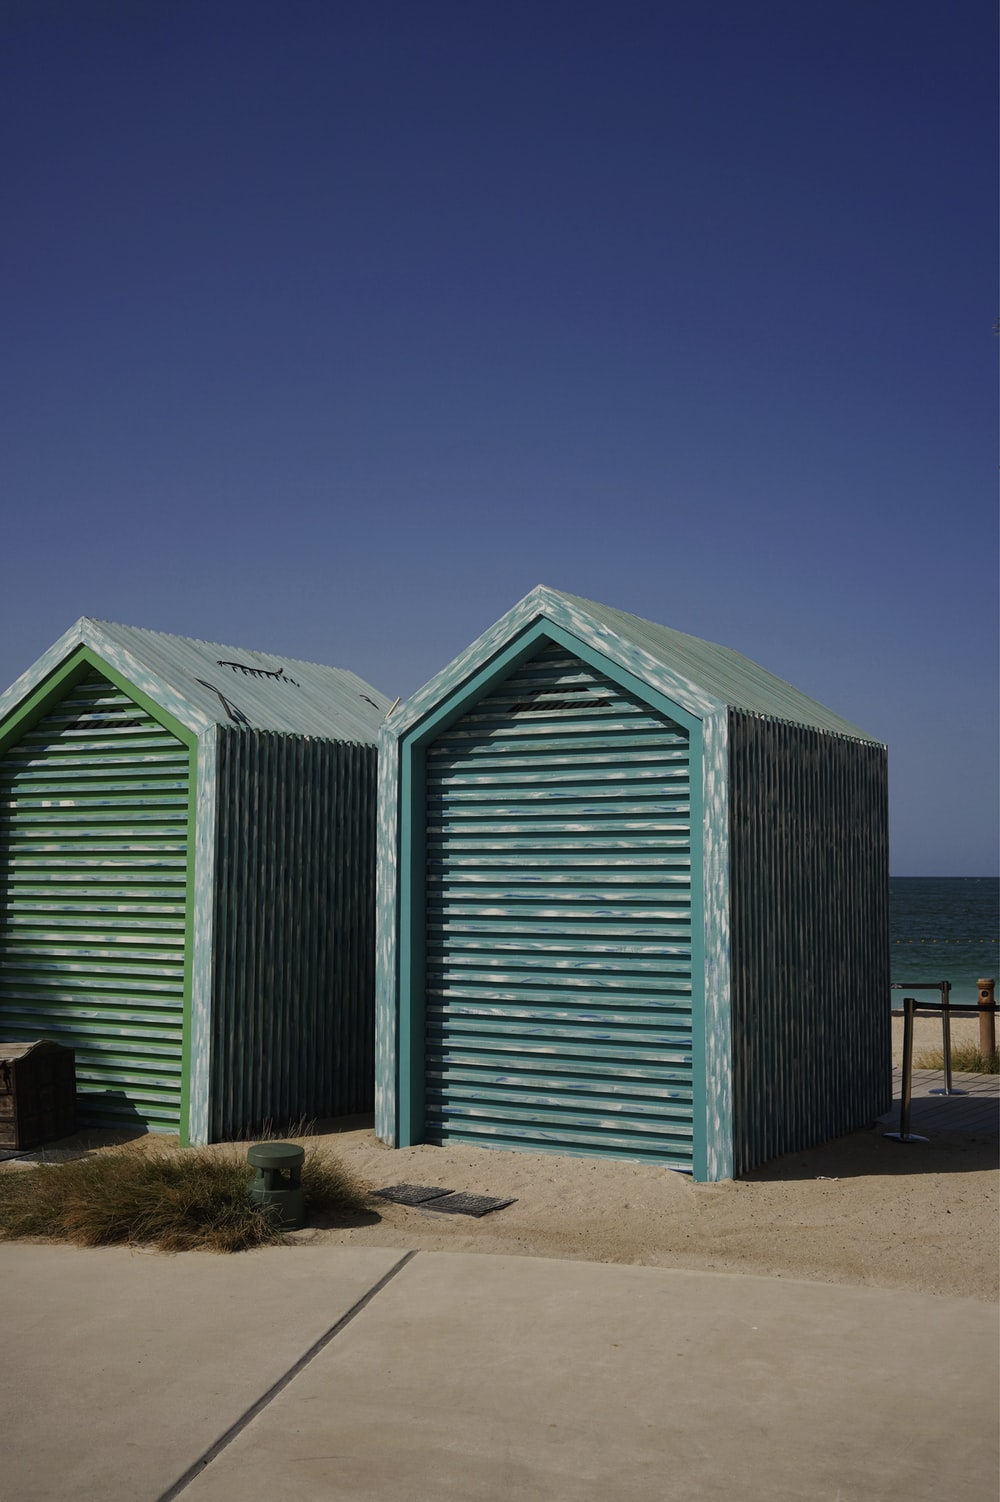 blue wooden houses on brown sand during daytime